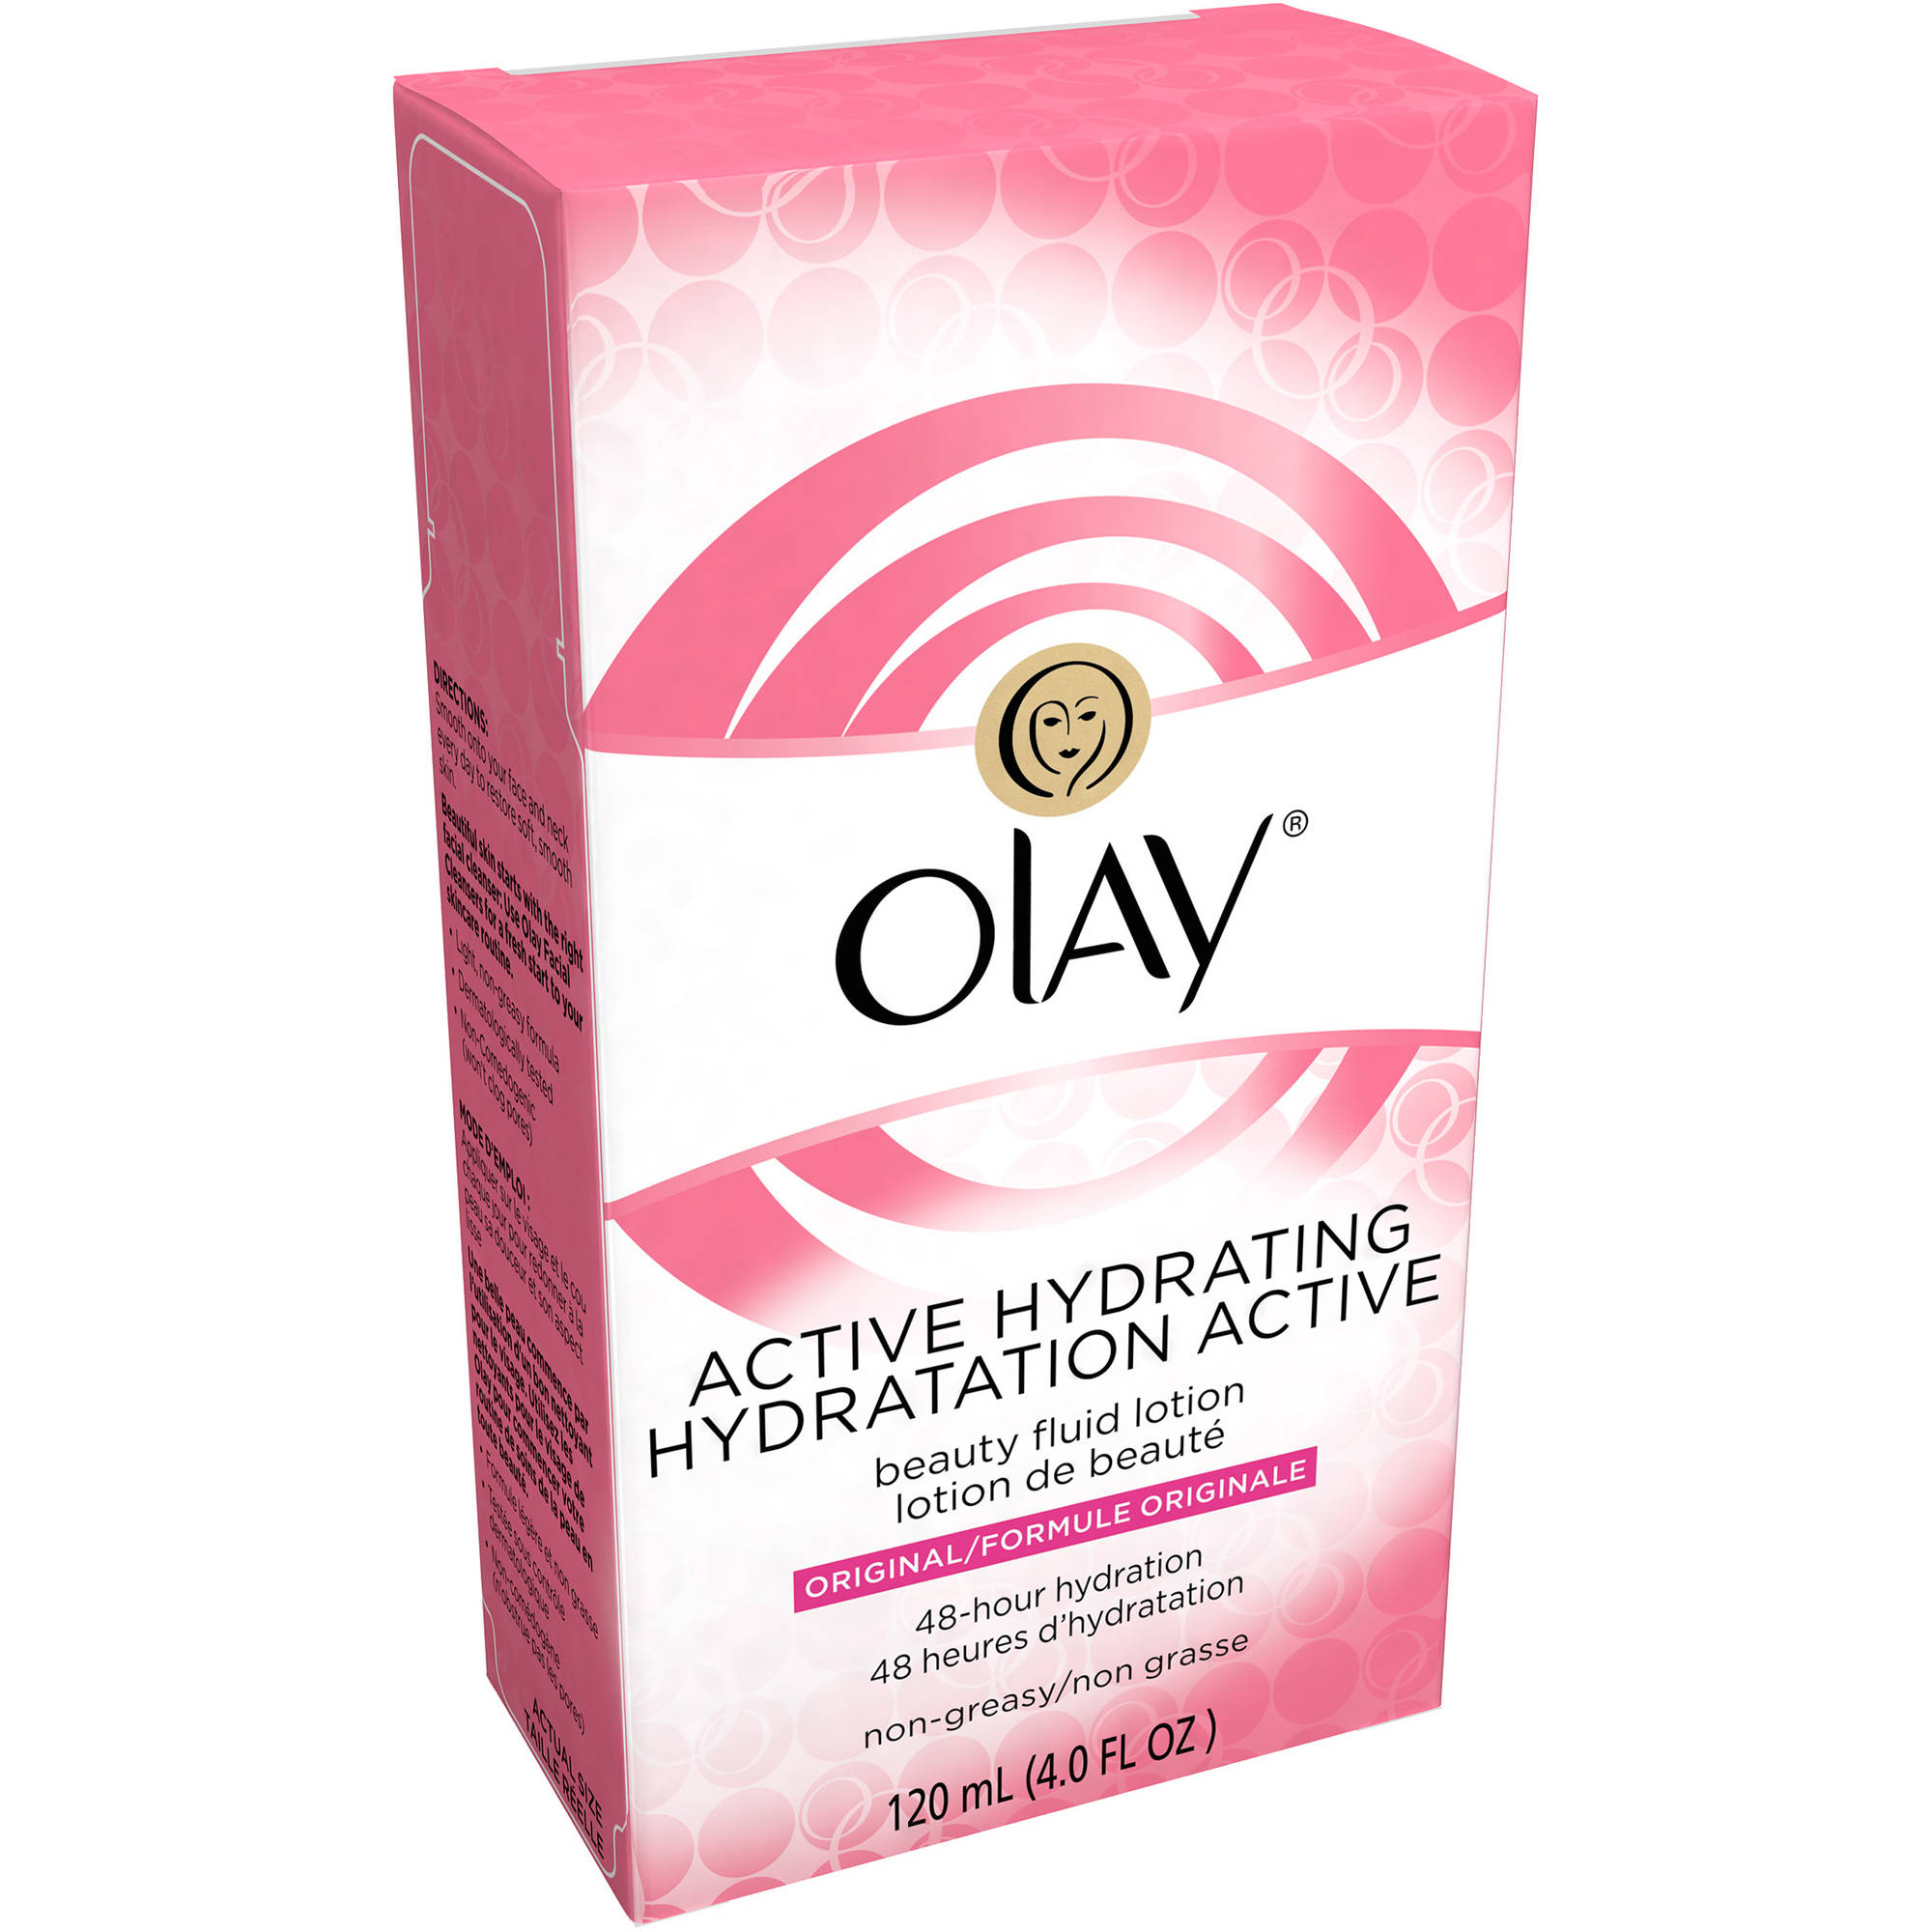 Olay Active Hydrating Beauty Fluid Lotion, 4.0 fl oz